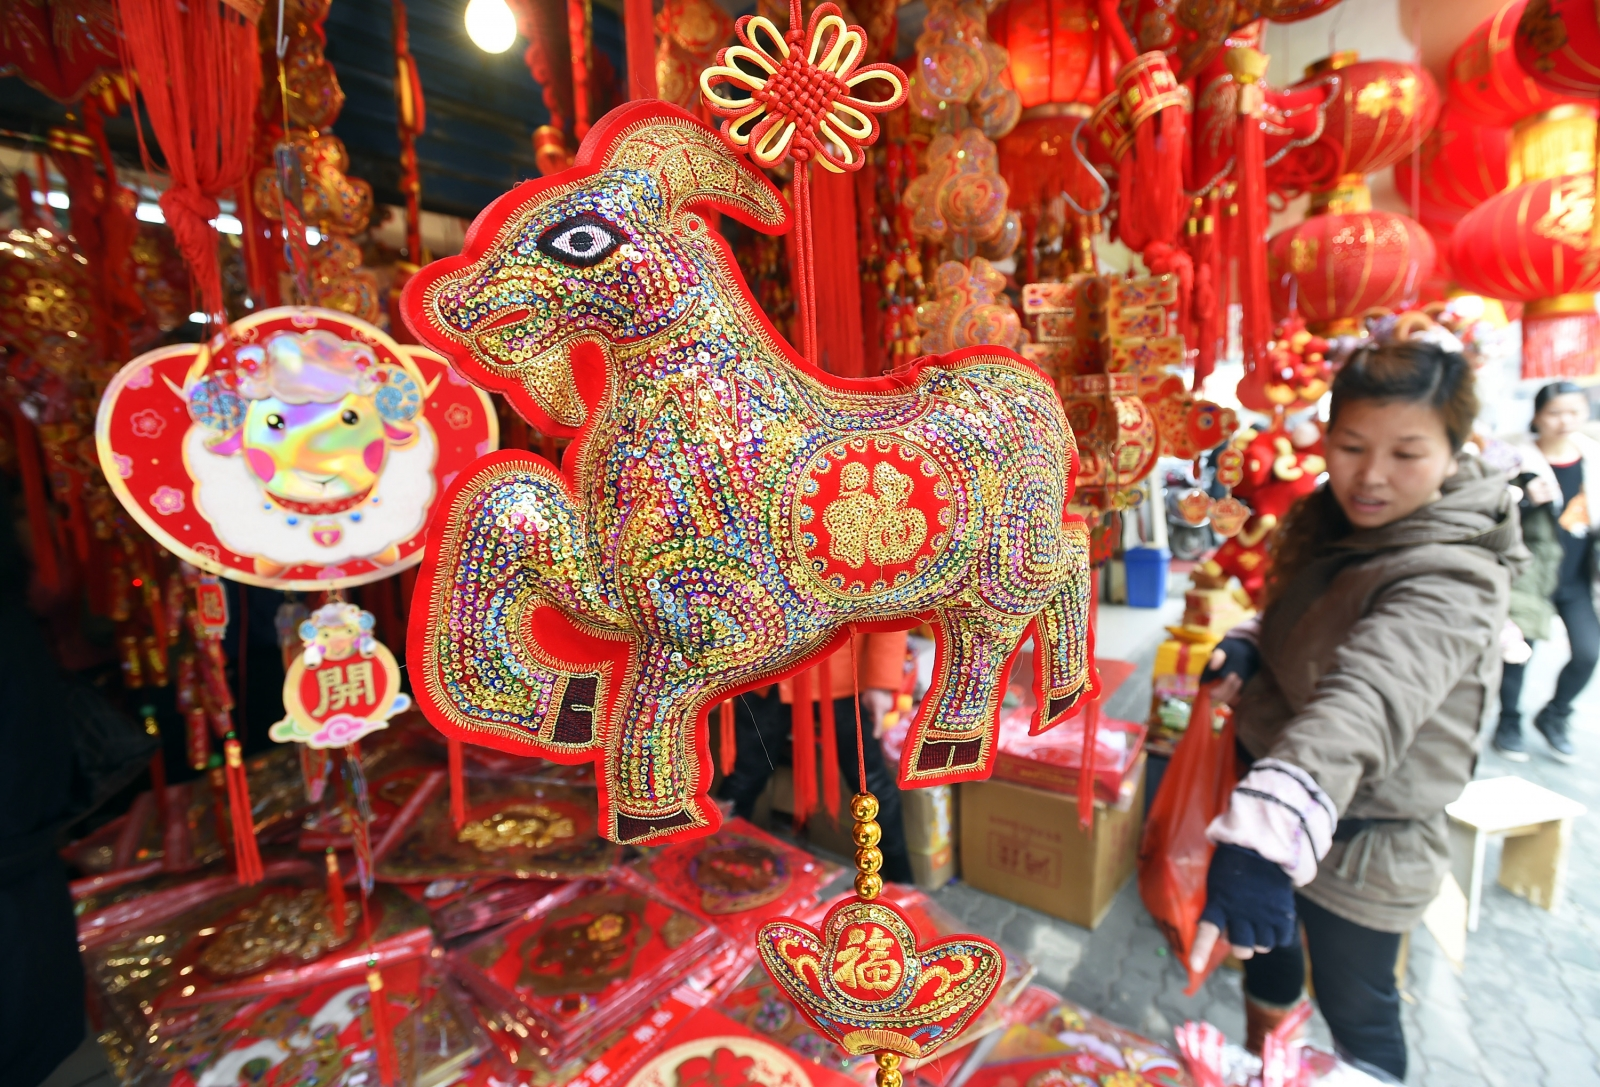 It's almost the Year of the Goat - have you made all your preparations? Here are some tech superstitions you can observe to increase your luck